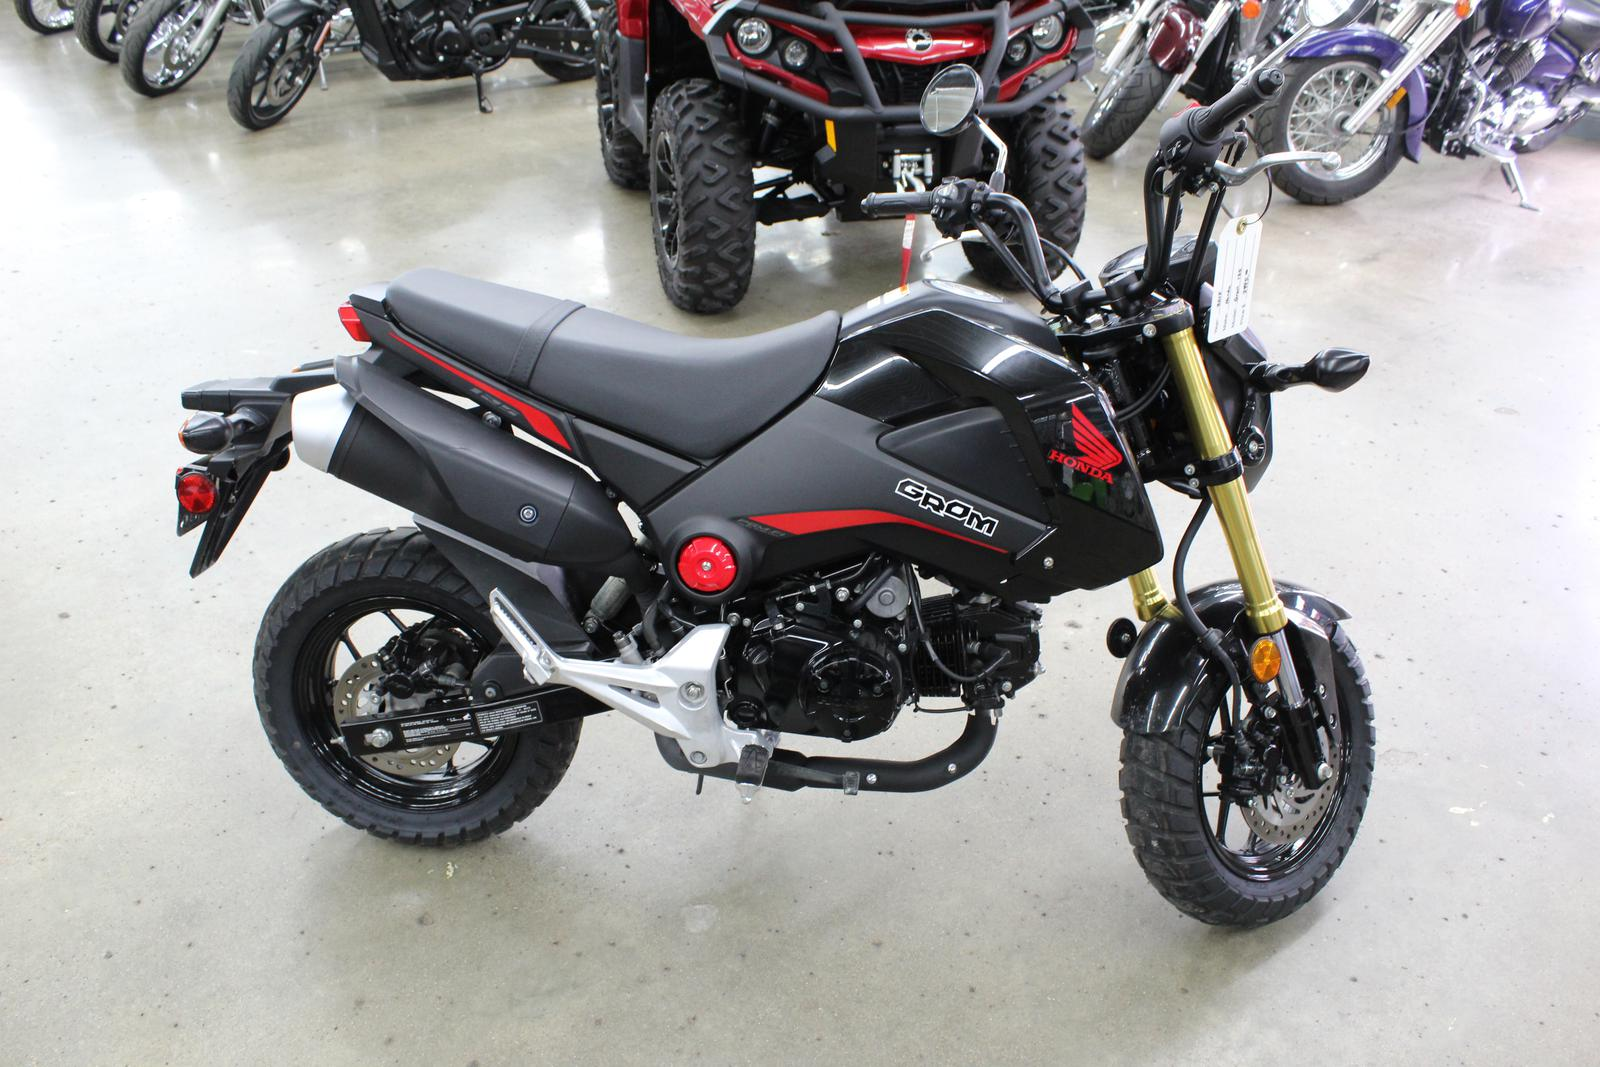 2015 Honda Grom 125 For Sale In Paducah Ky Chase Motorsports Inc